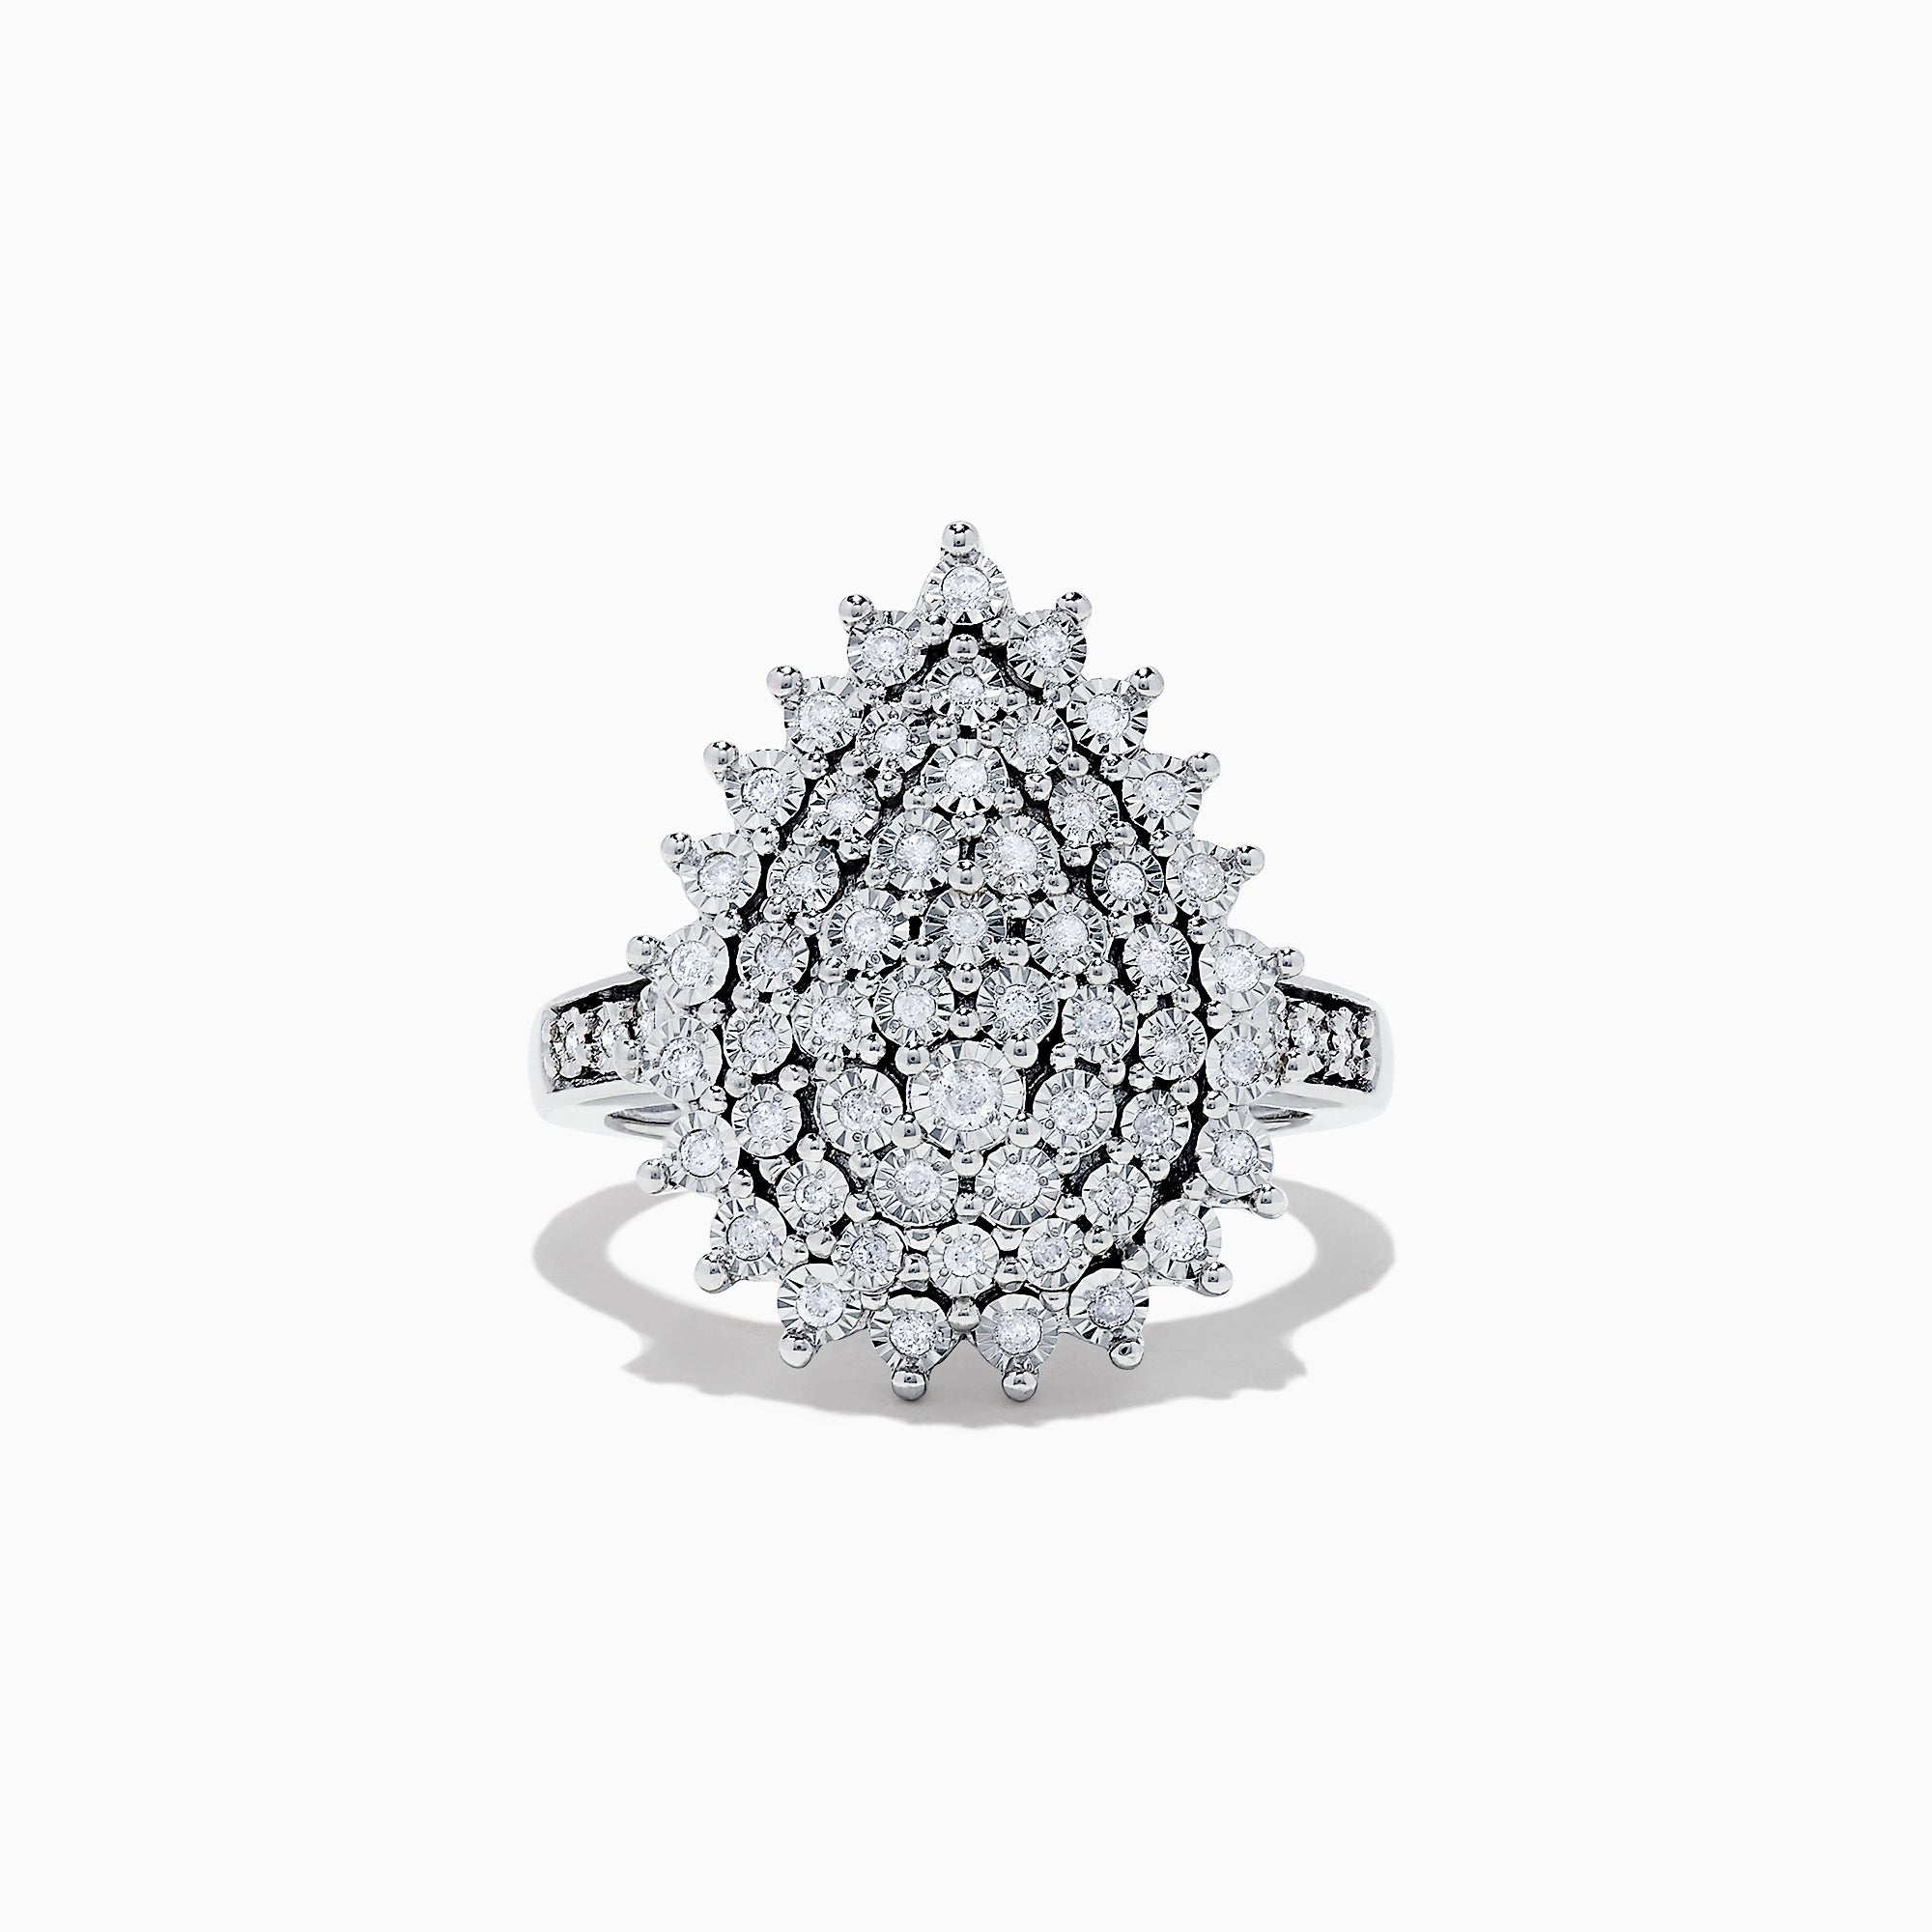 Effy 925 Sterling Silver Diamond Cluster Ring, 0.28 TCW